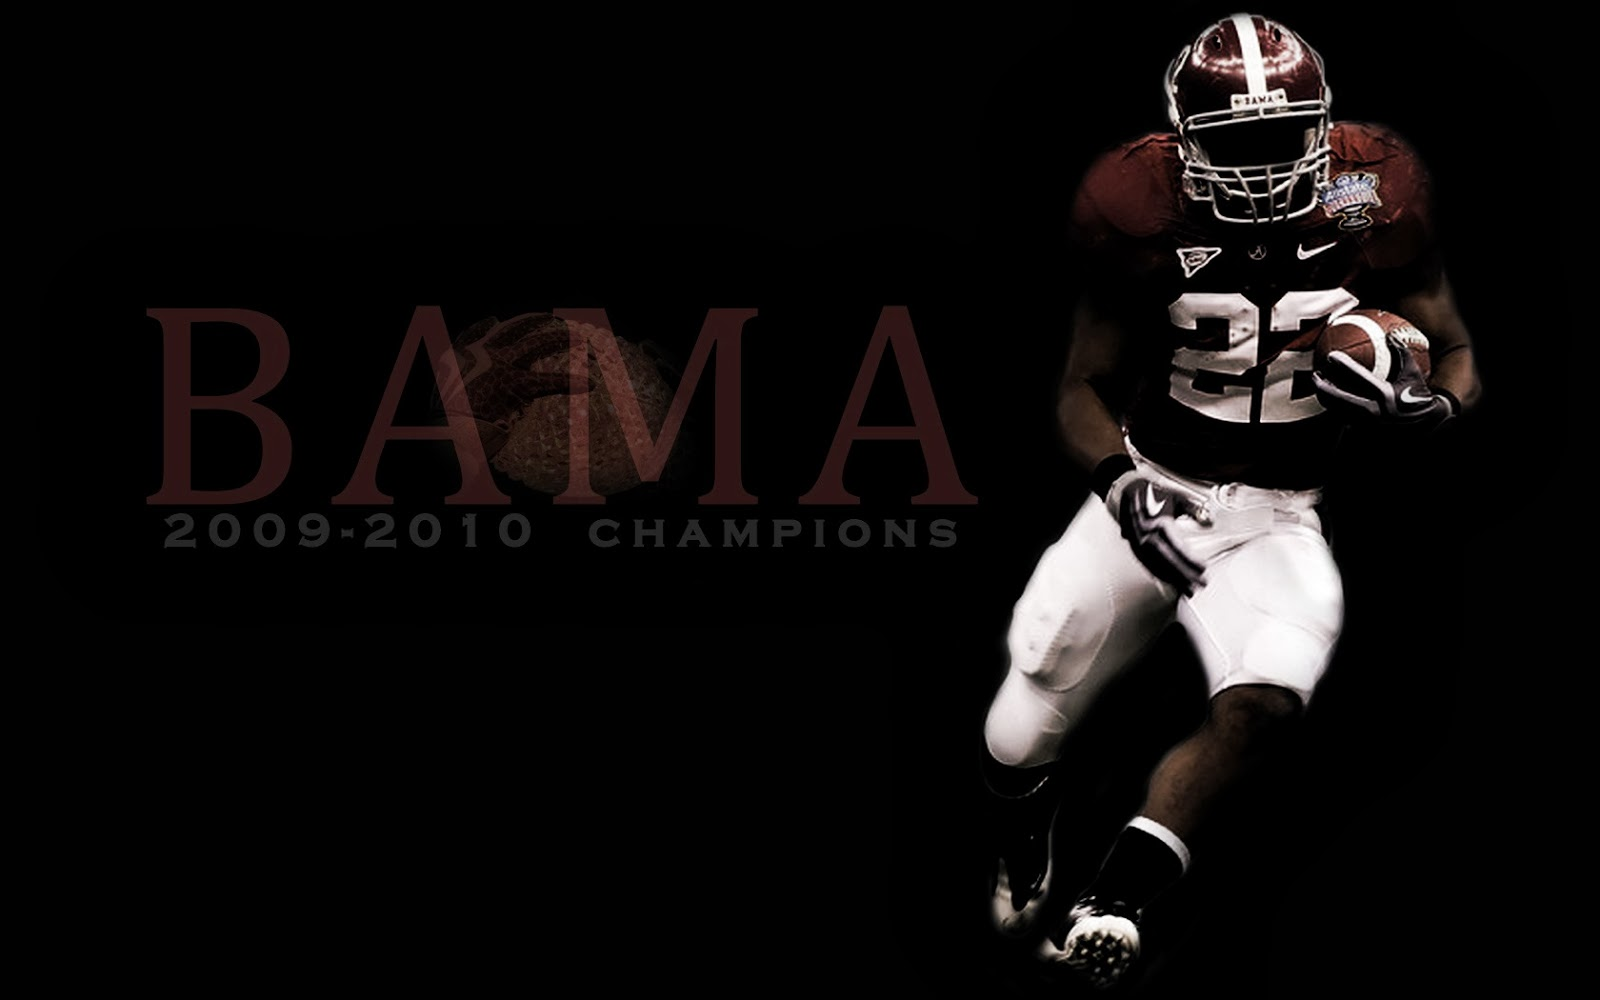 Alabama football Team wallpapers HD Wallpapers Window Top Rated 1600x1000